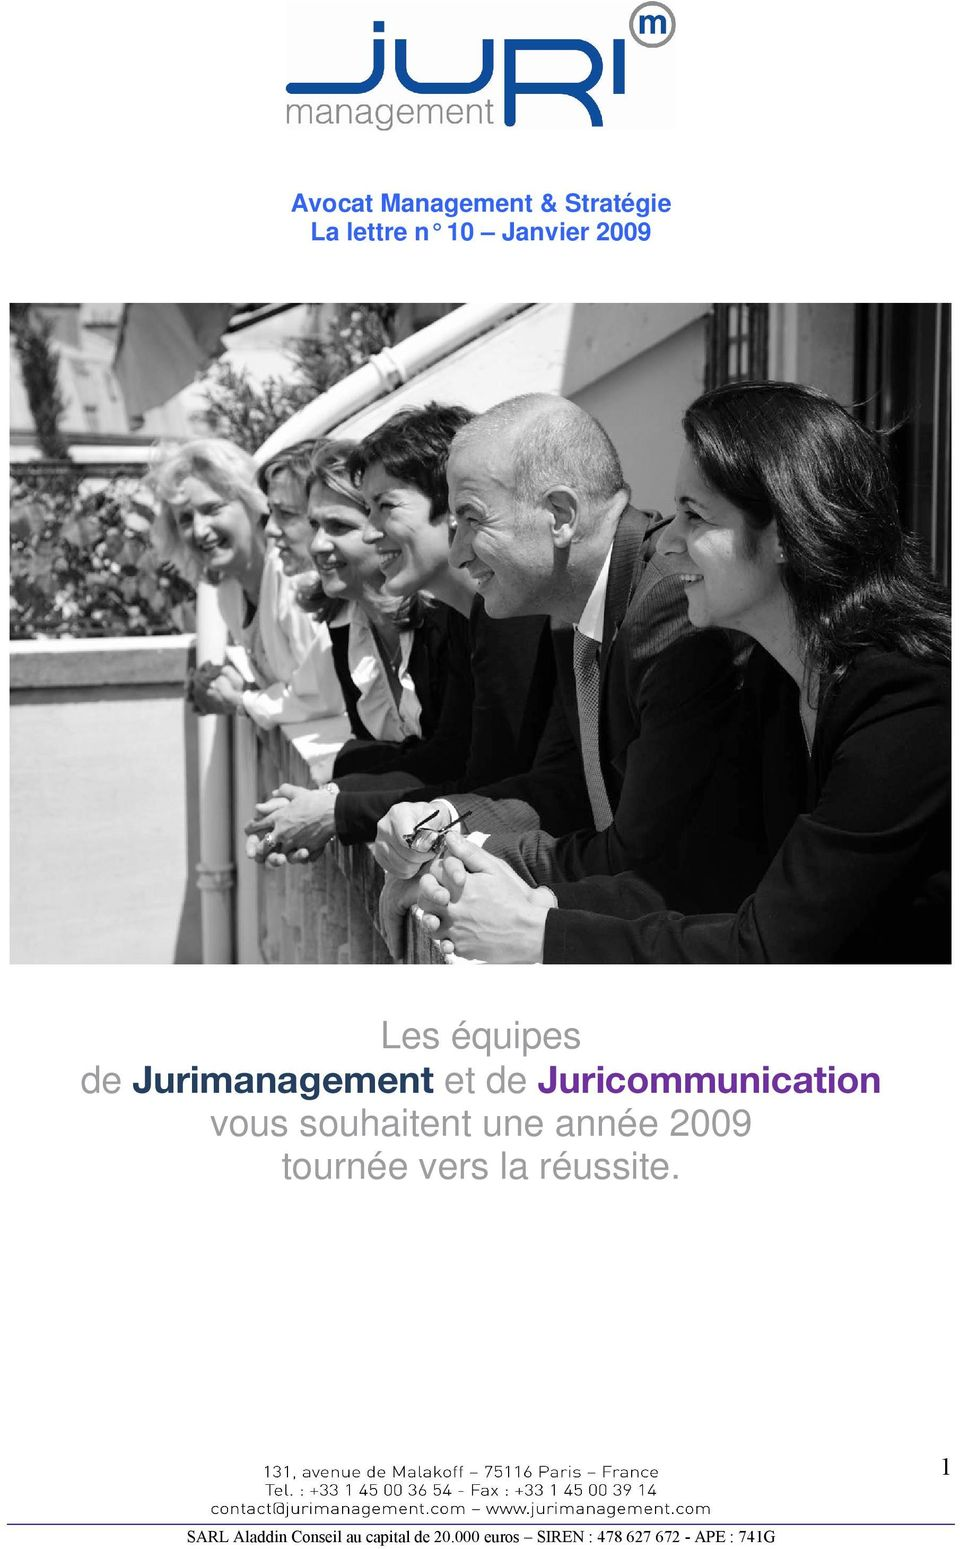 Jurimanagement et de Juricommunication